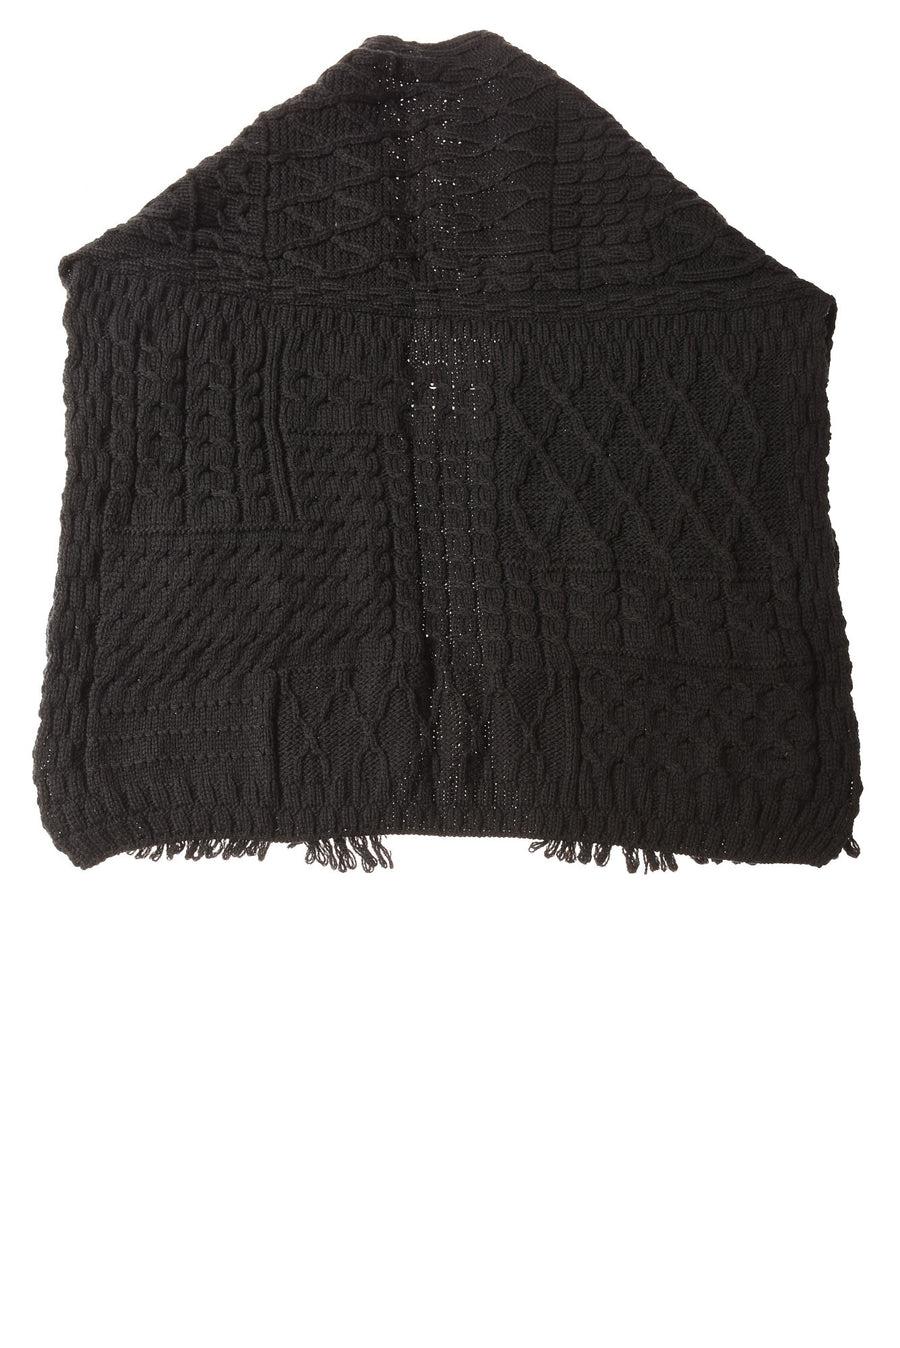 USED Connemara Knit Wear Women's Shawl One Size Black